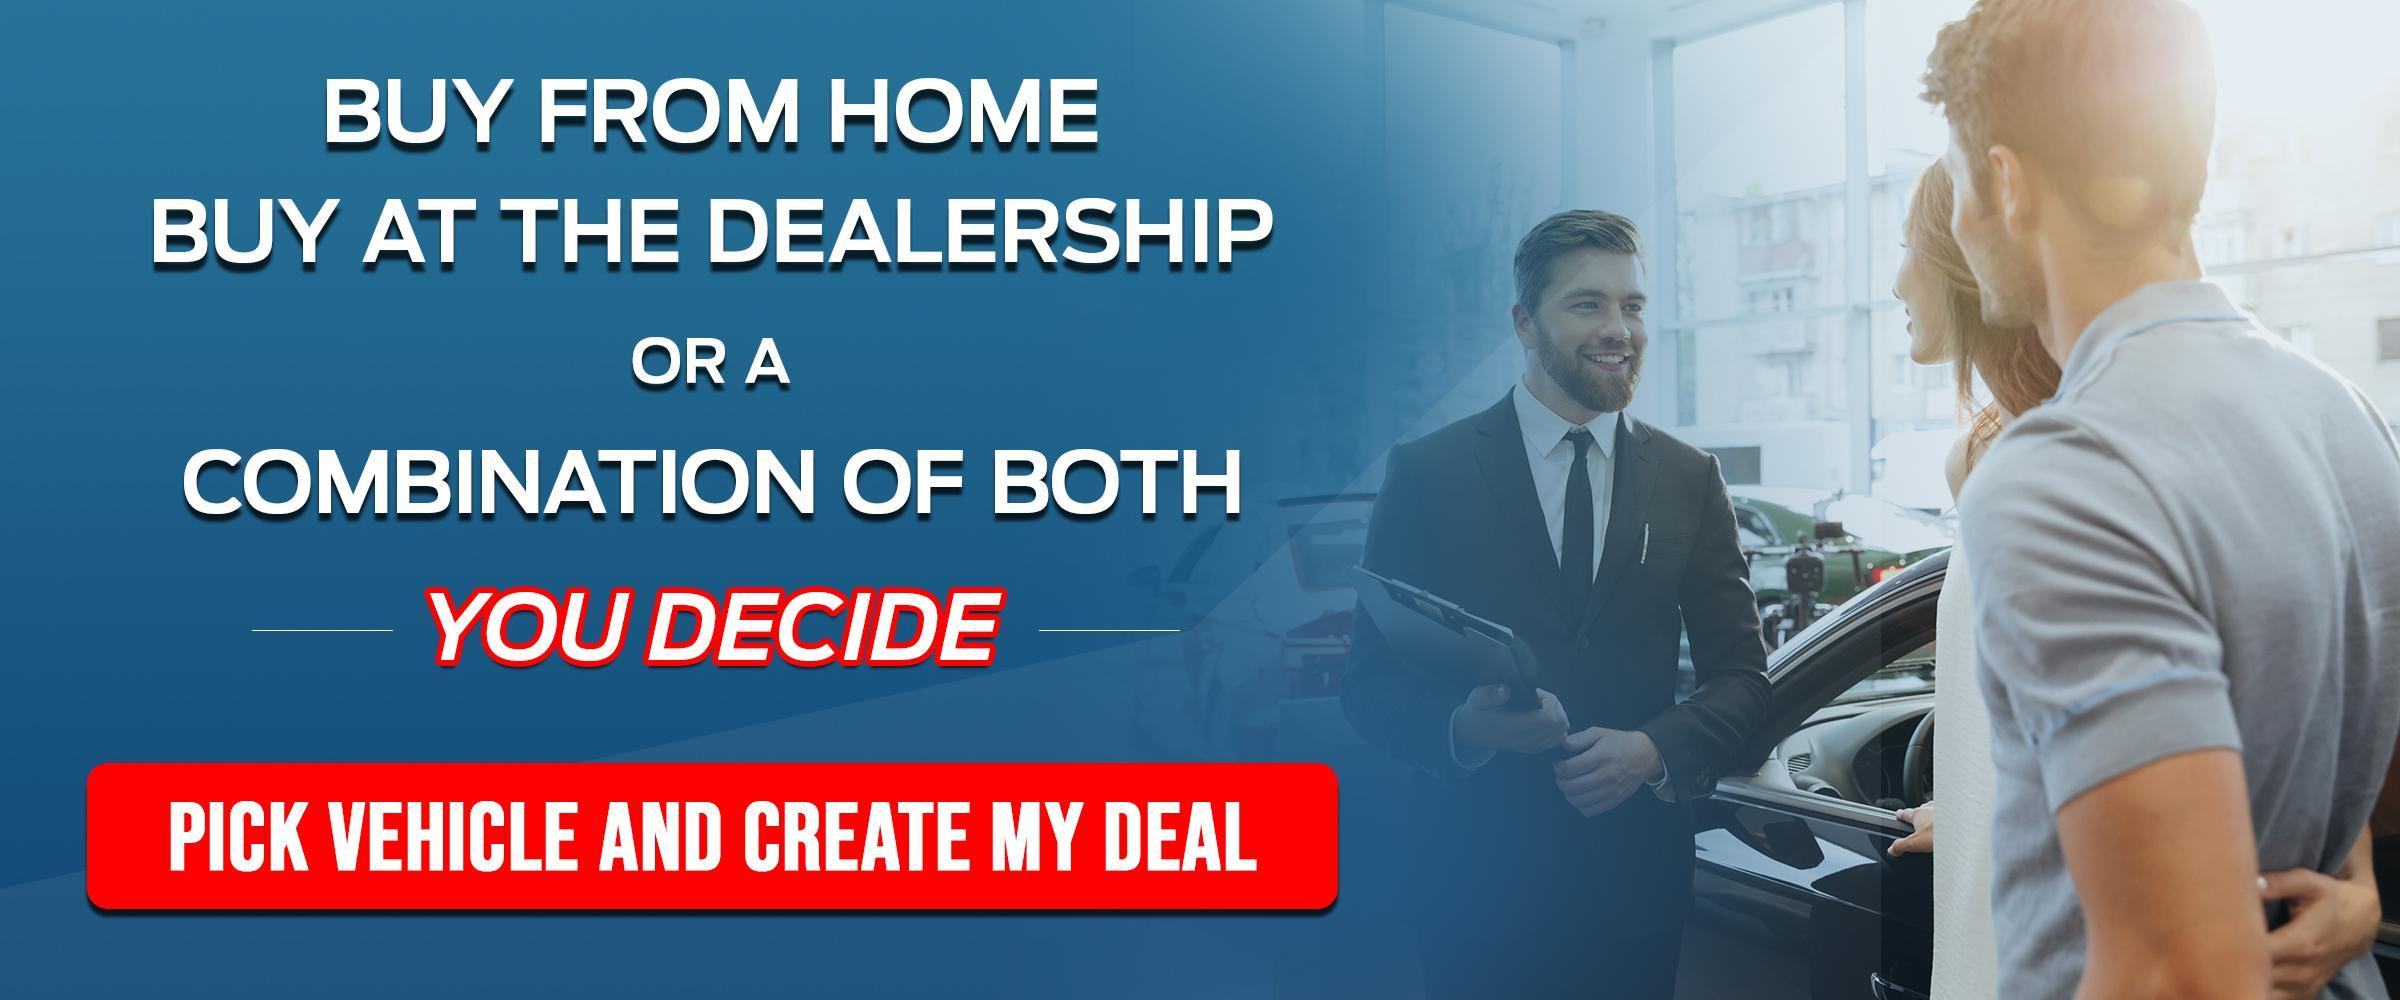 Shop From Home with AIM's Virtual Shopping Assistant | Steeltown Ford Sales